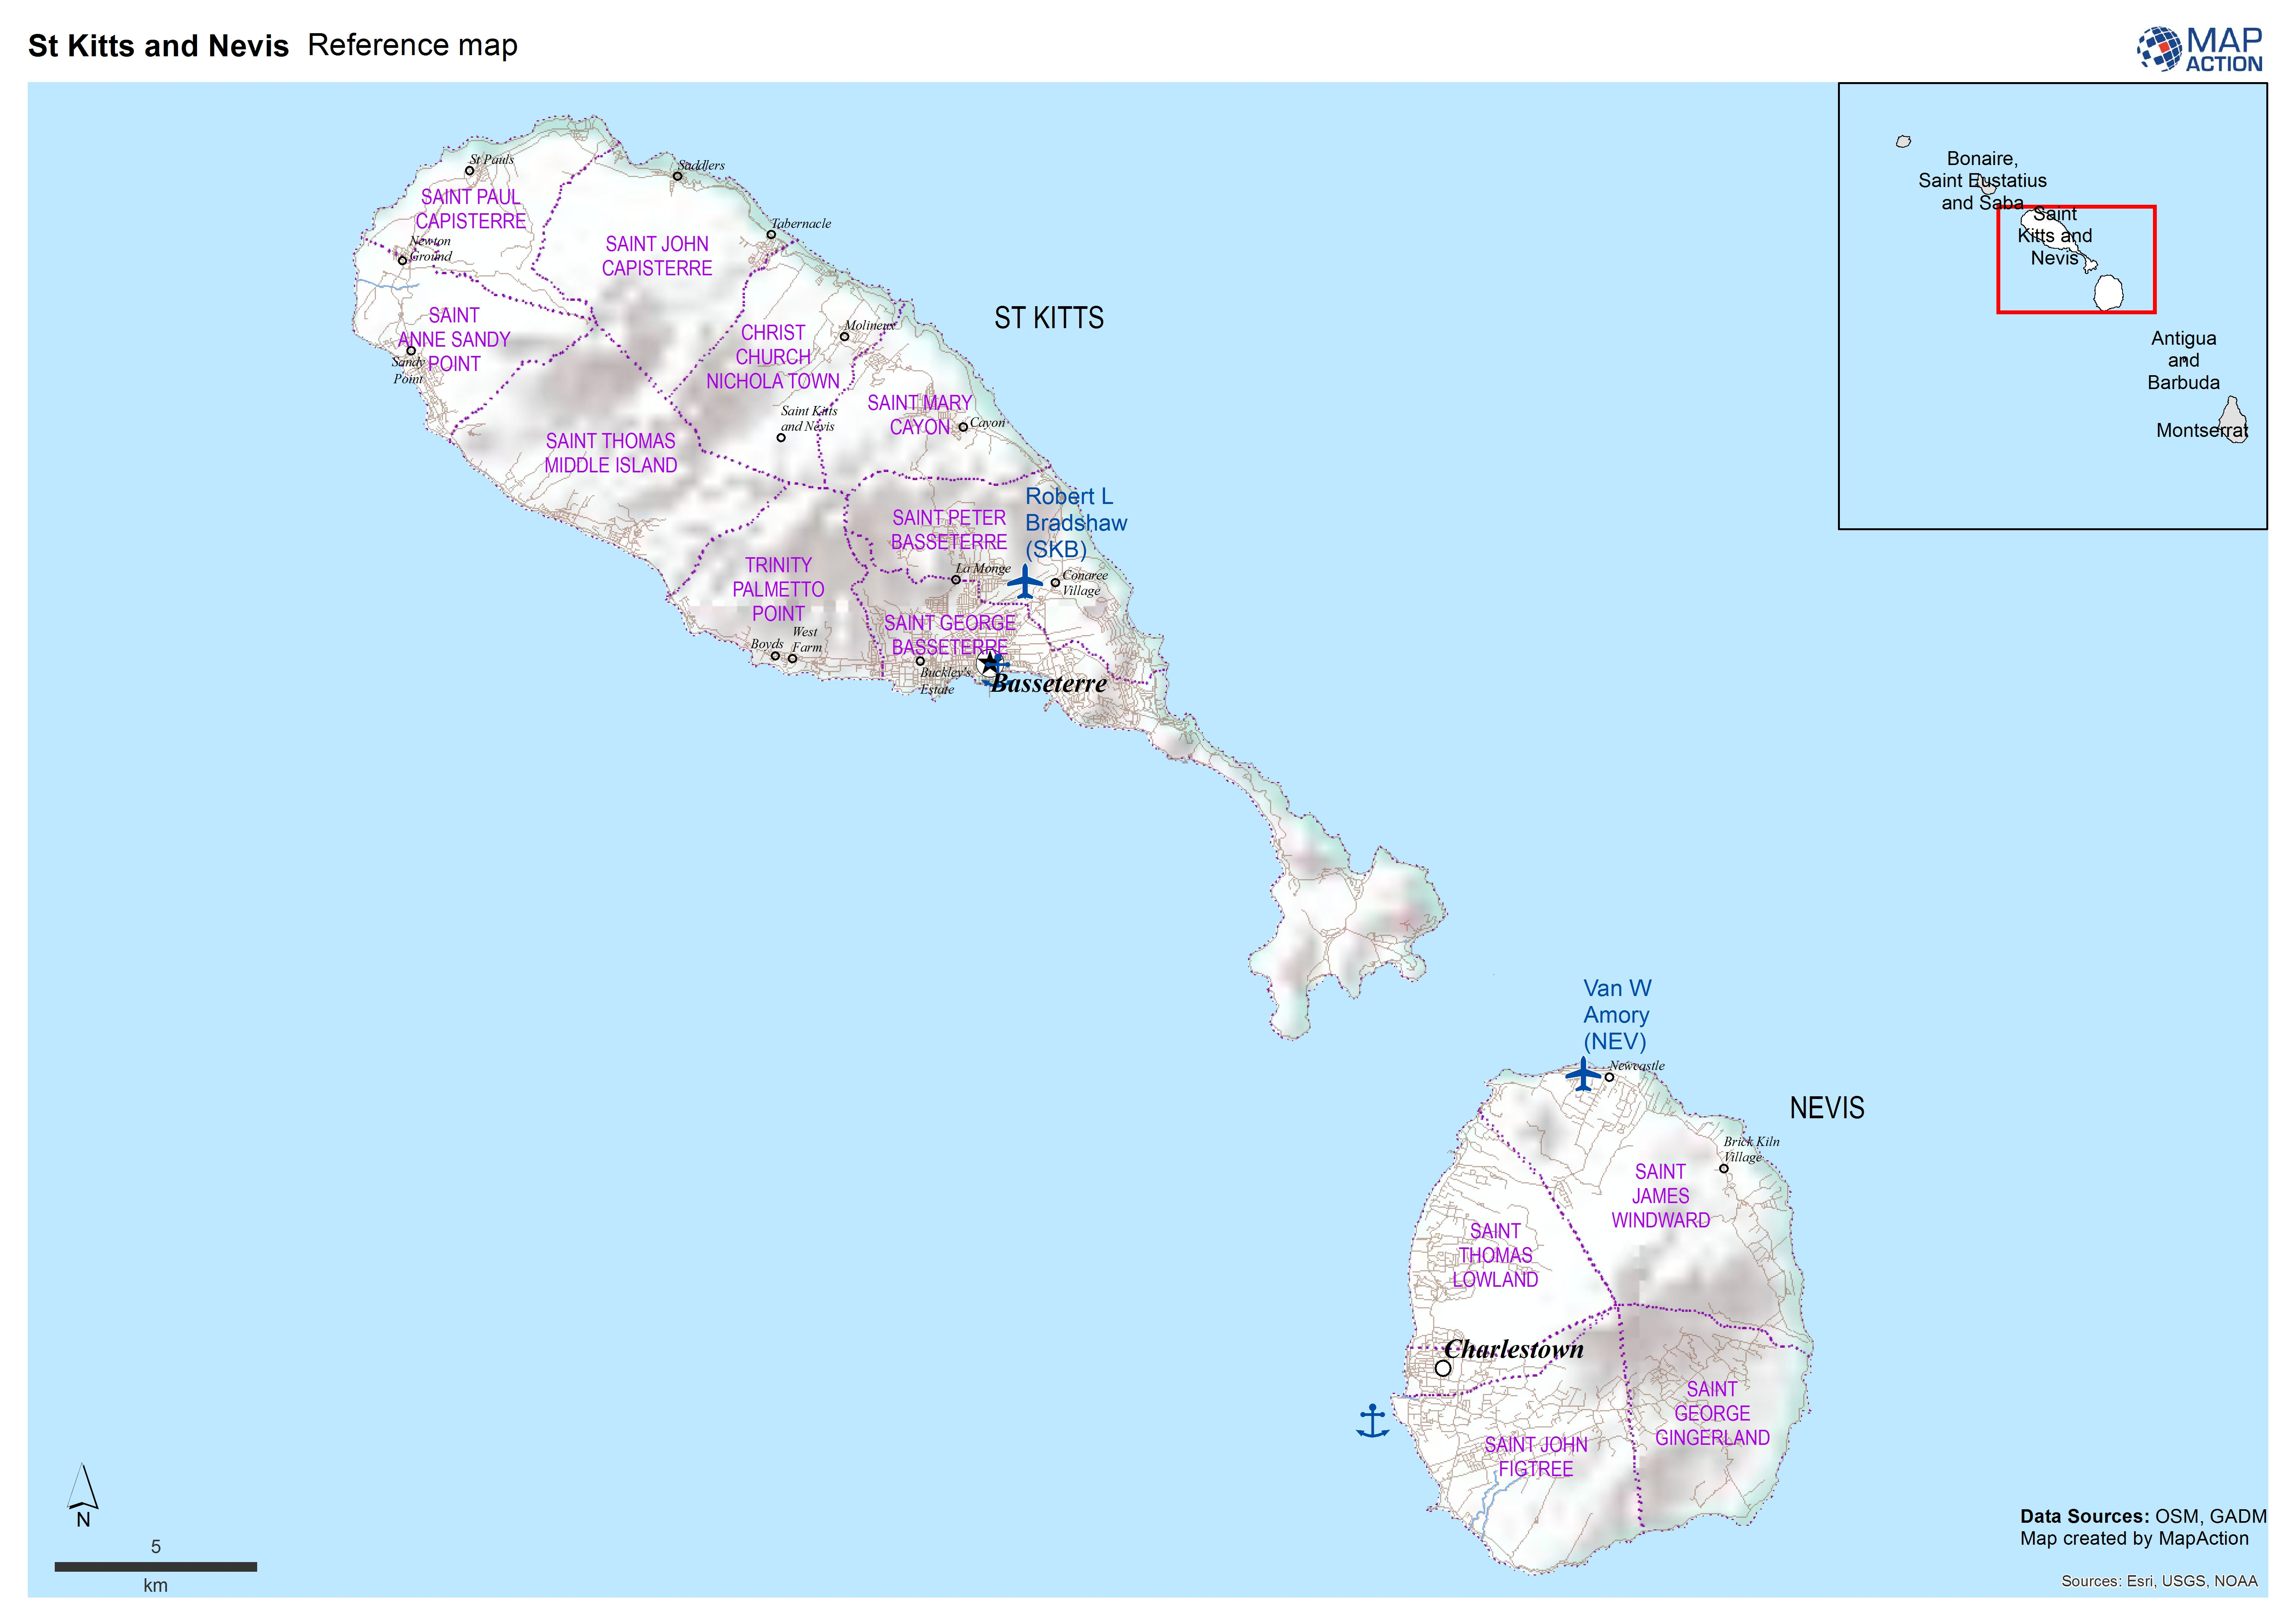 St Kitts and Nevis Reference map - Datasets - MapAction